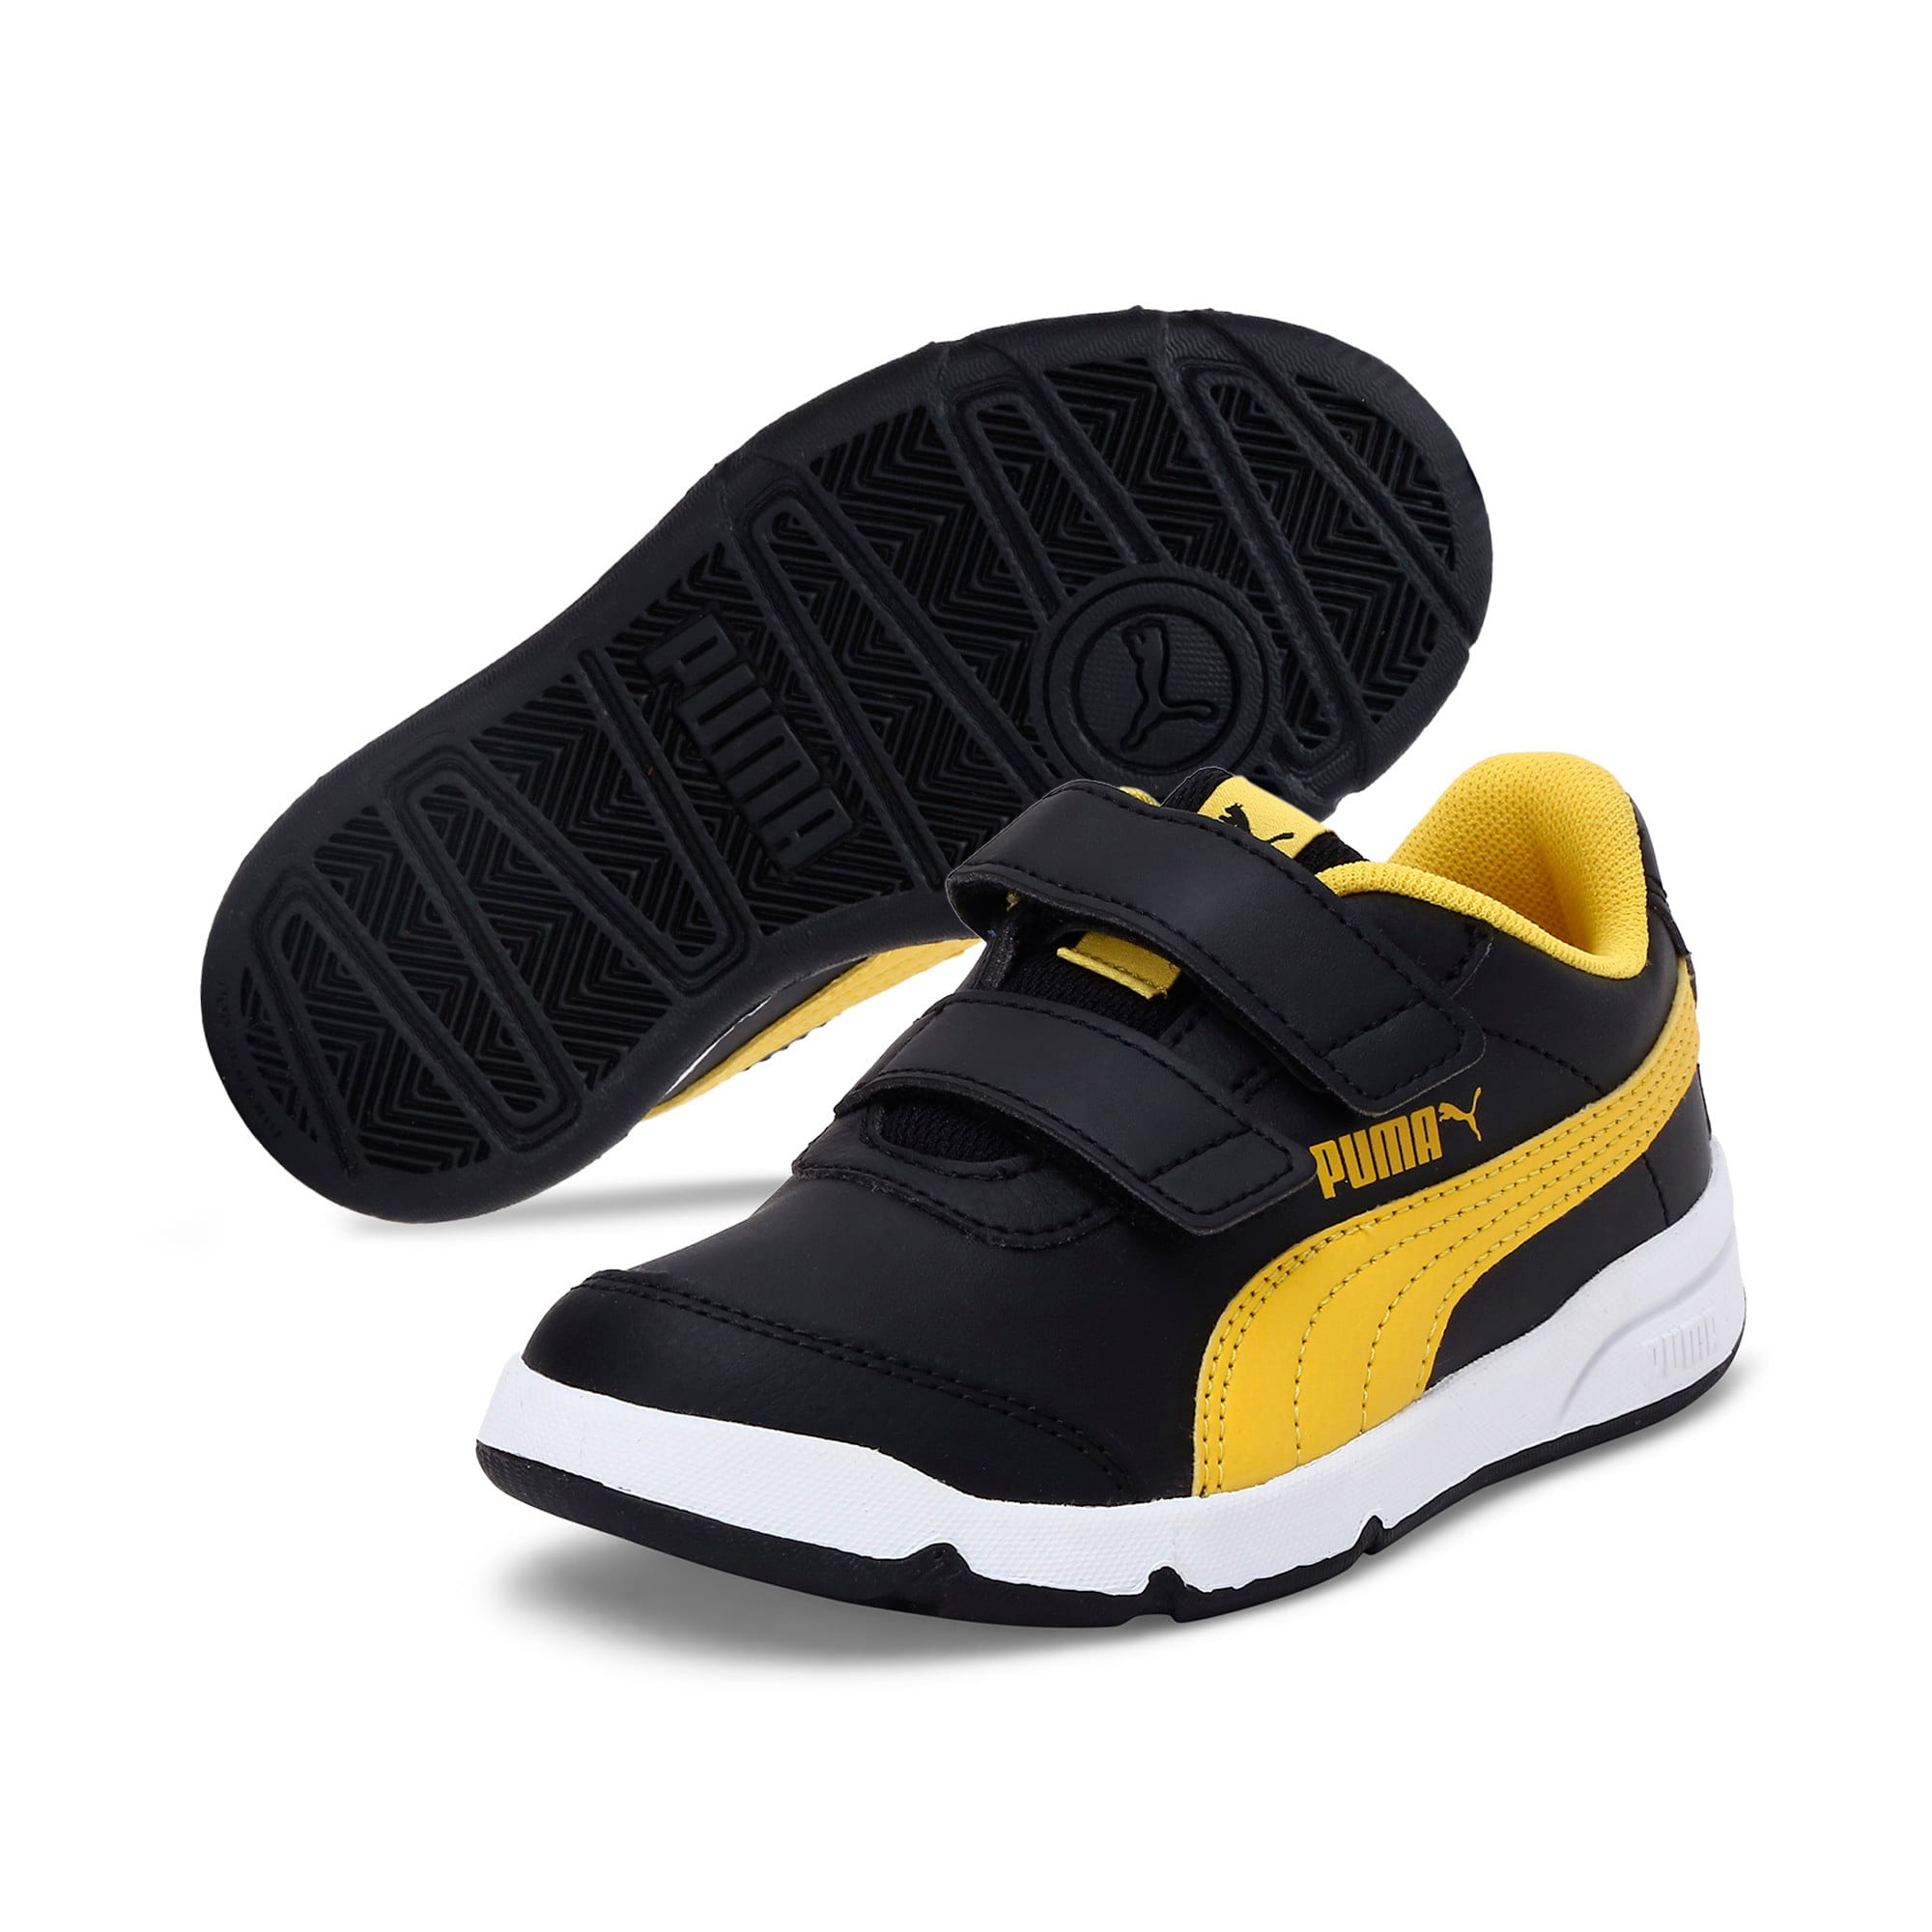 Thumbnail 2 of Stepfleex 2 SL VE V Kids' Trainers, Puma Black-Sulphur-White, medium-IND